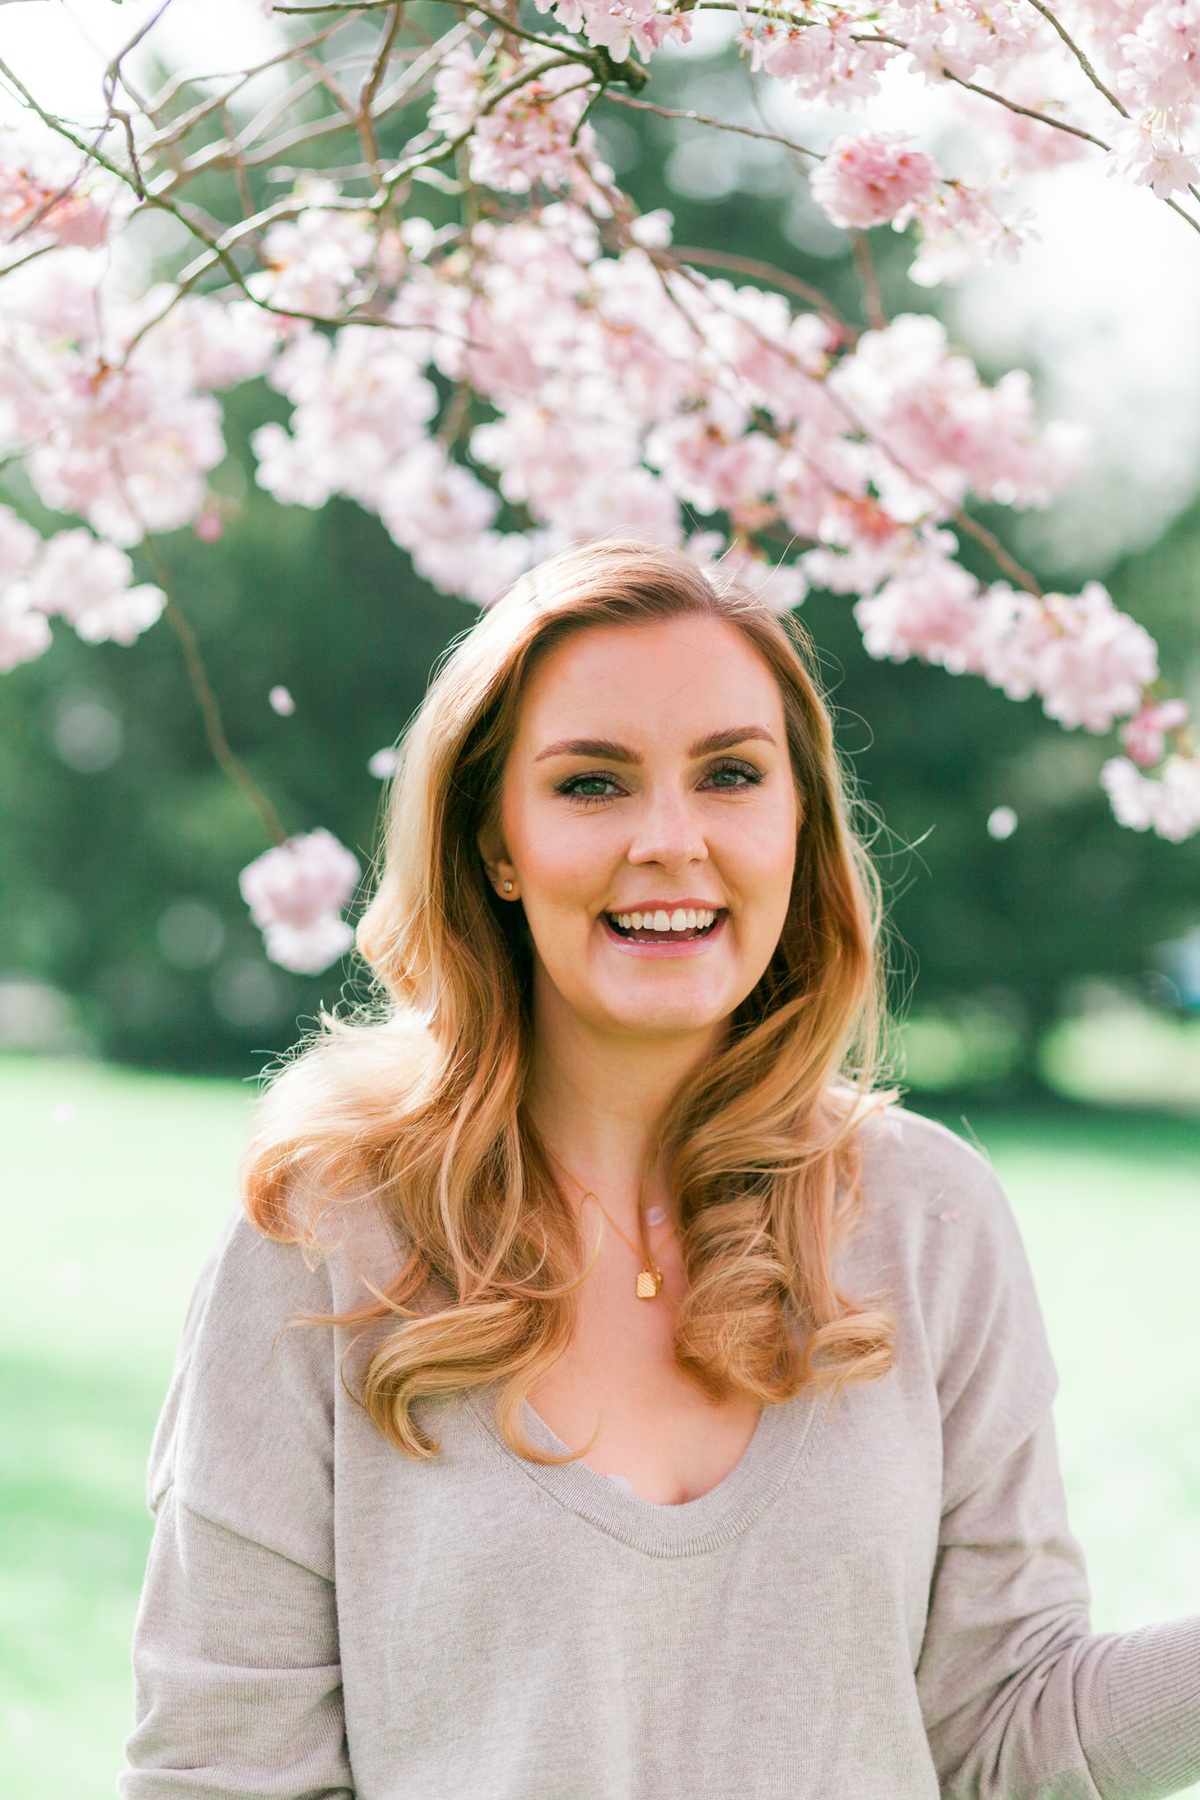 Branding headshot photo by Emma Jackson Photography of a woman in a neutral top standing amongst pink blossom smiling